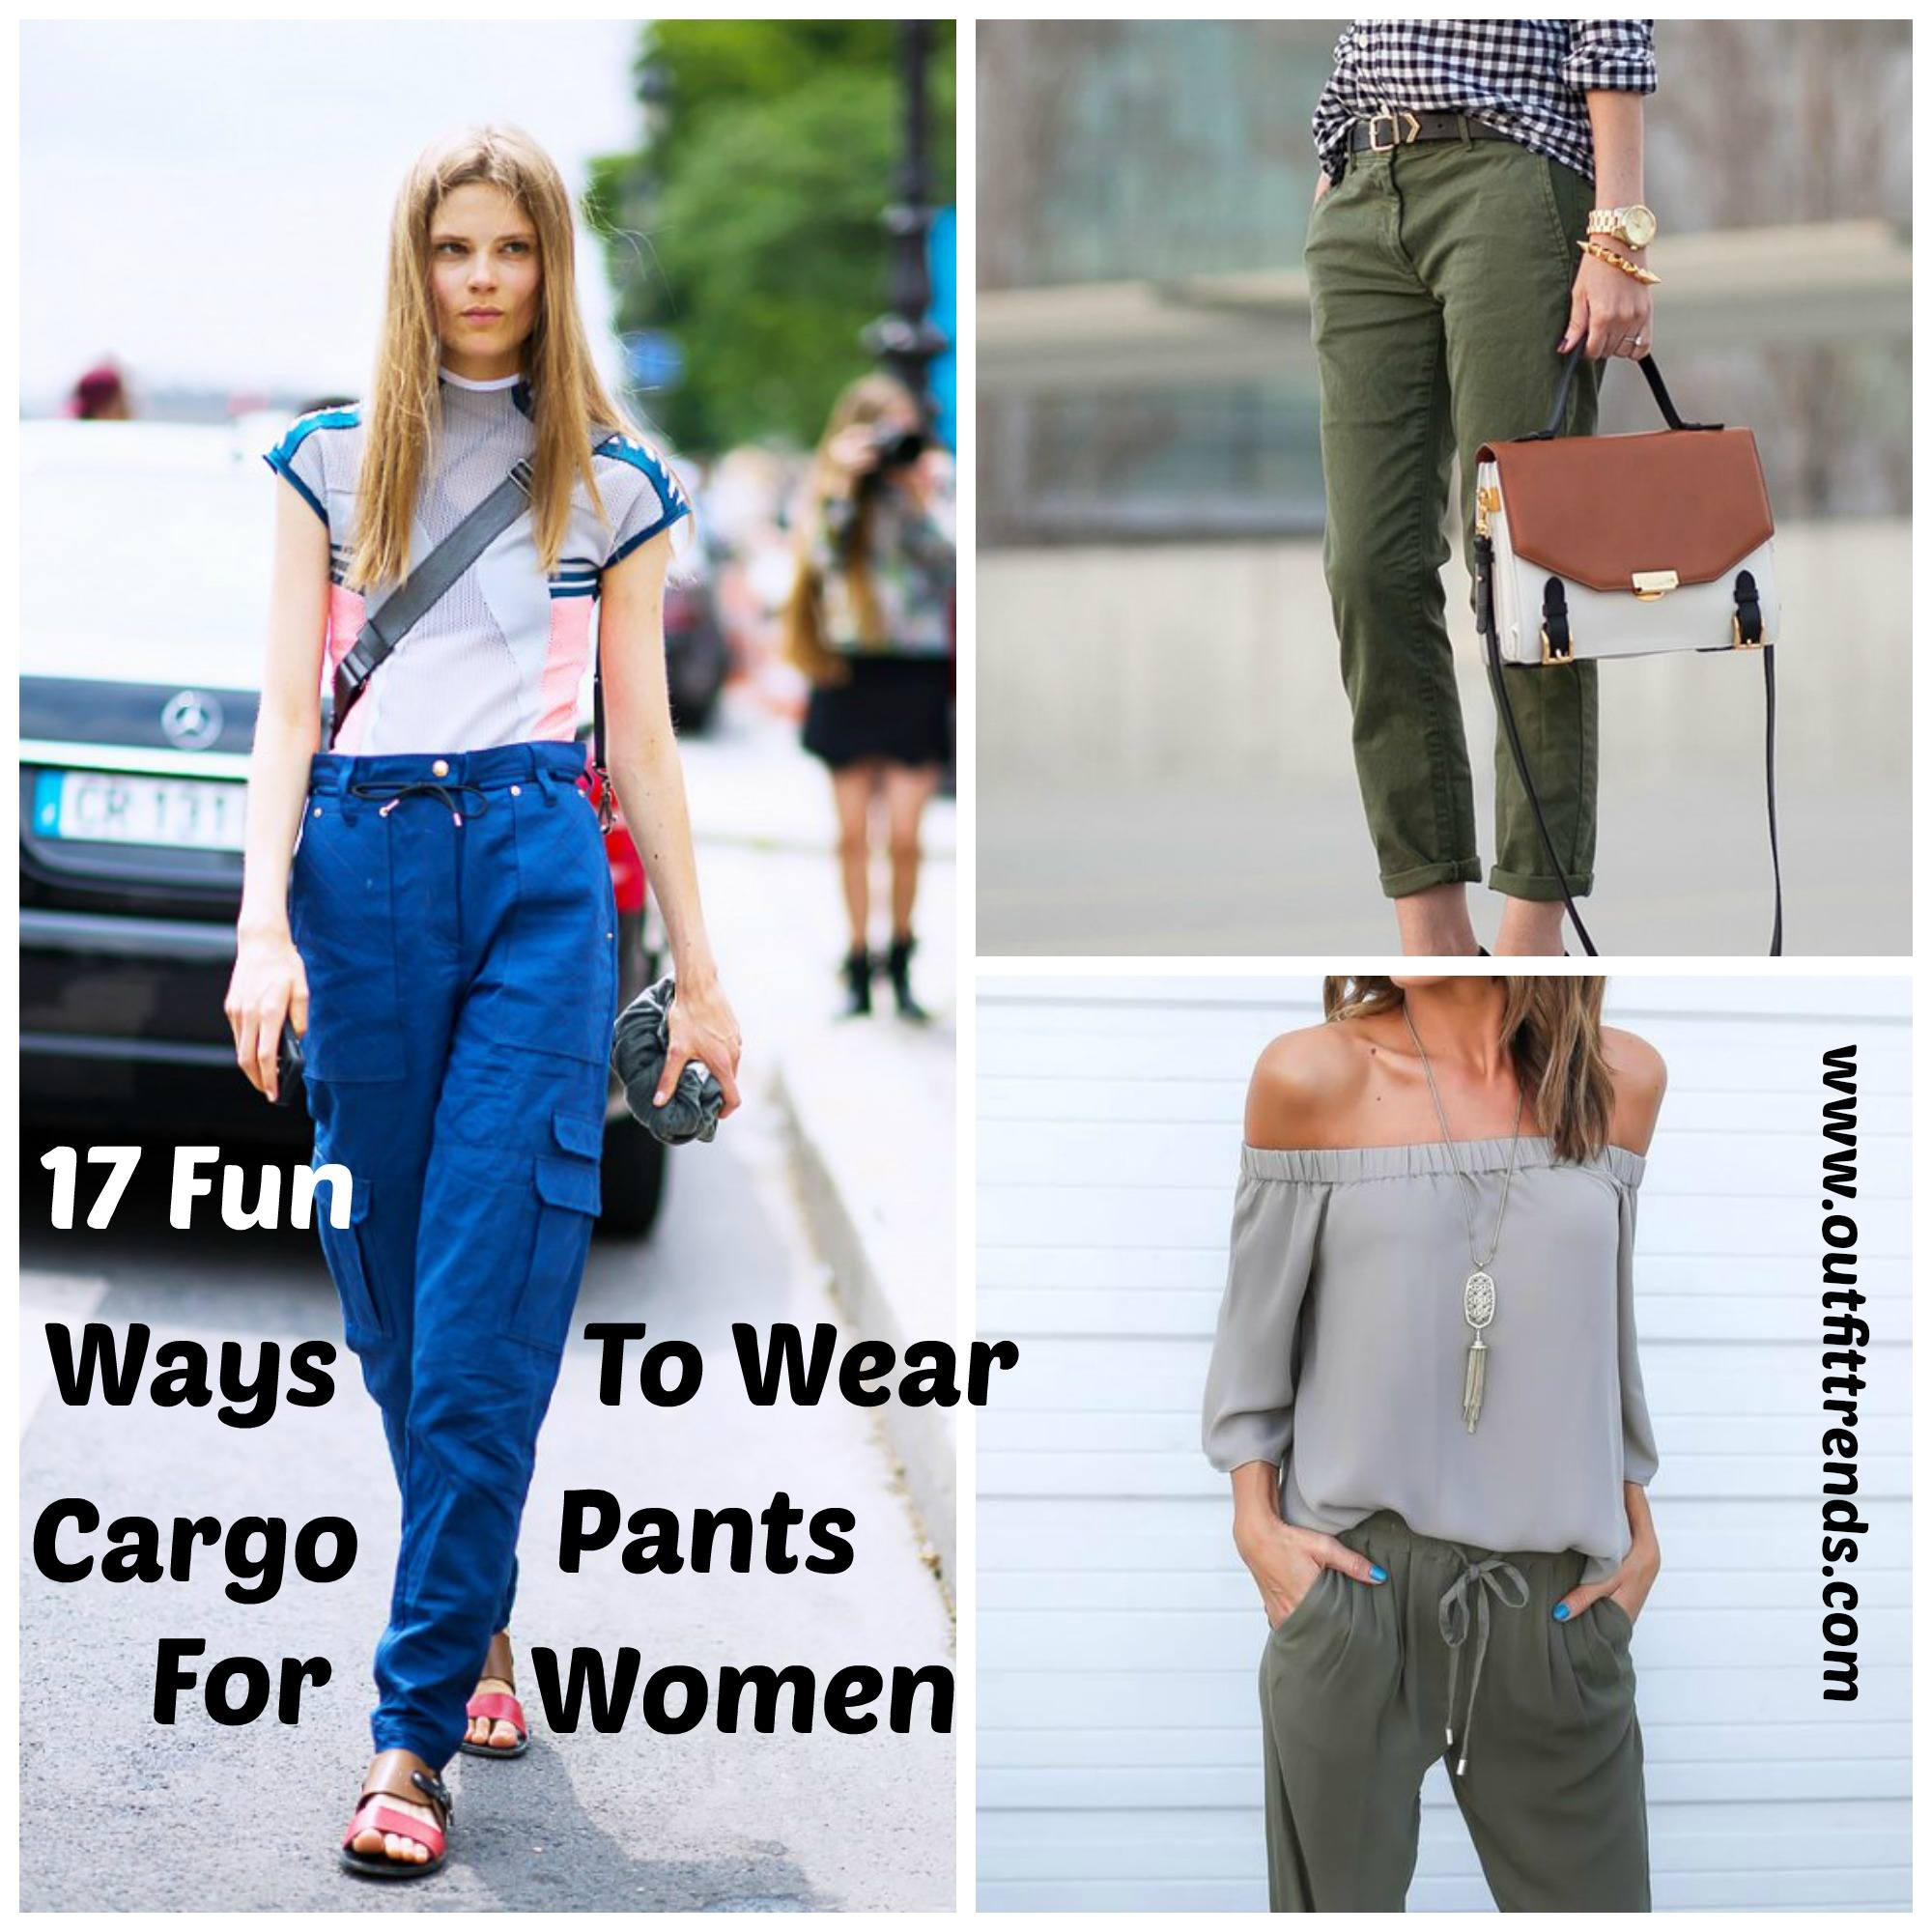 Hot Fashion Women Ladies Summer High Waist Striped Belt Long Pants Casual Wide Leg Trousers Outwear Convenient To Cook Bottoms Pants & Capris